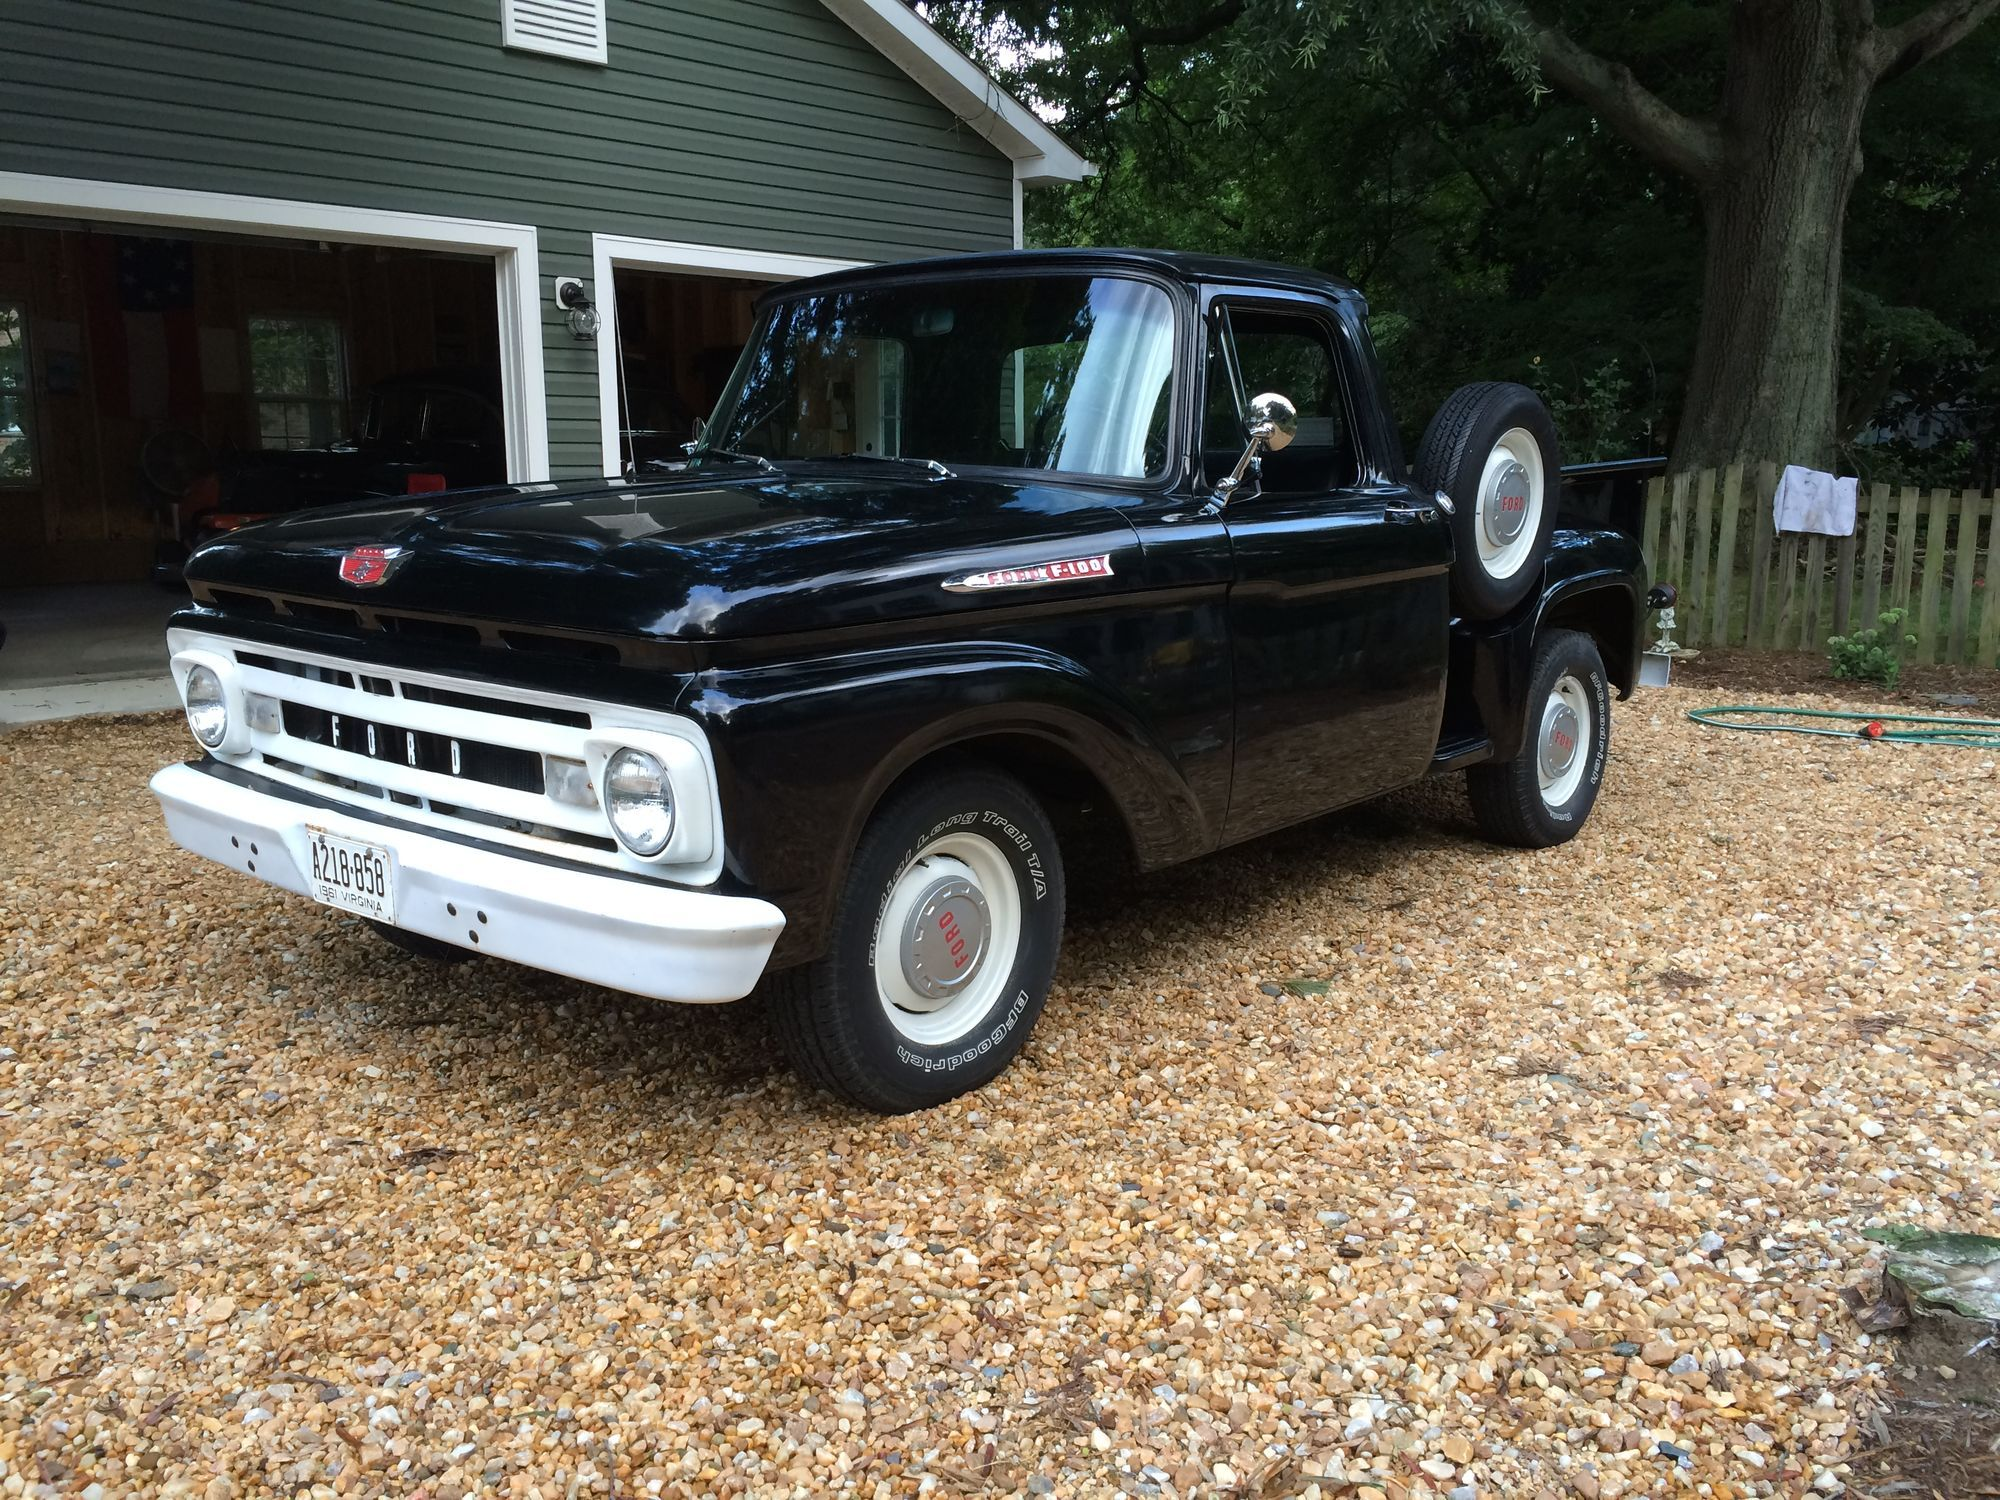 1961 Ford F100 Swb Stepside Ford Truck Enthusiasts Forums Classic Ford Trucks Pickup Trucks Ford Trucks